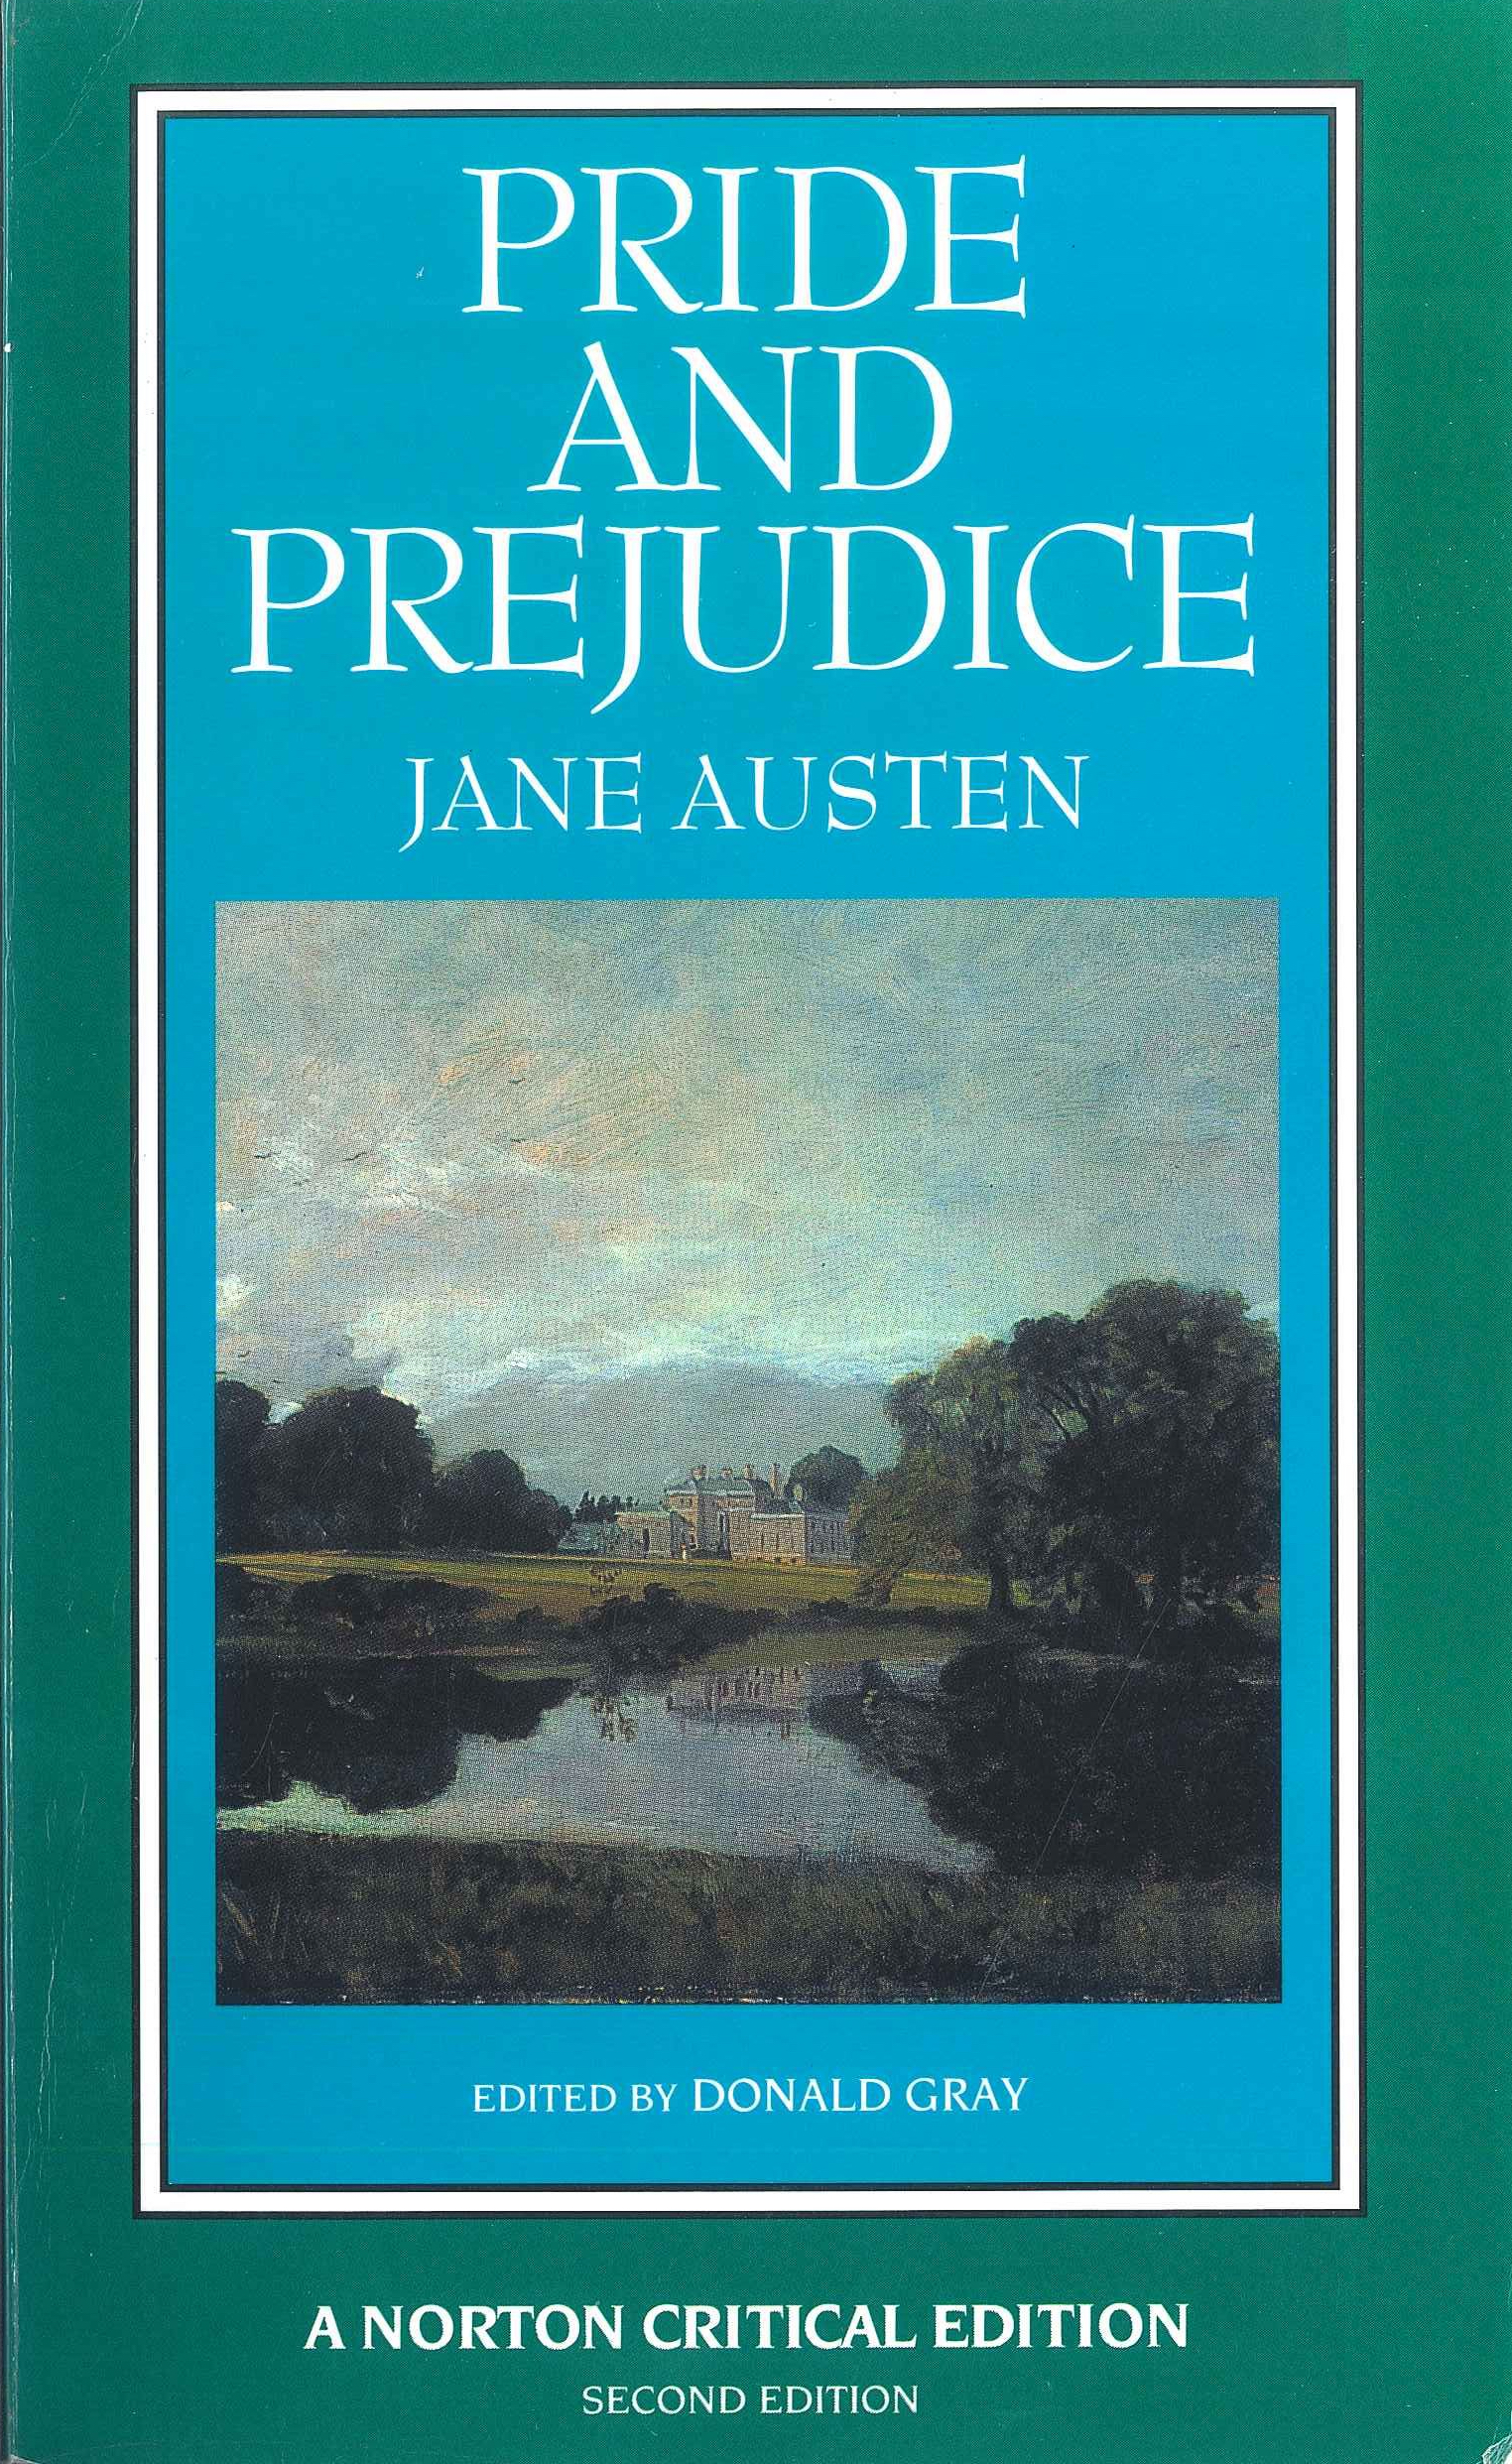 Judging A Book By Its Cover Pride And Prejudice Crafting